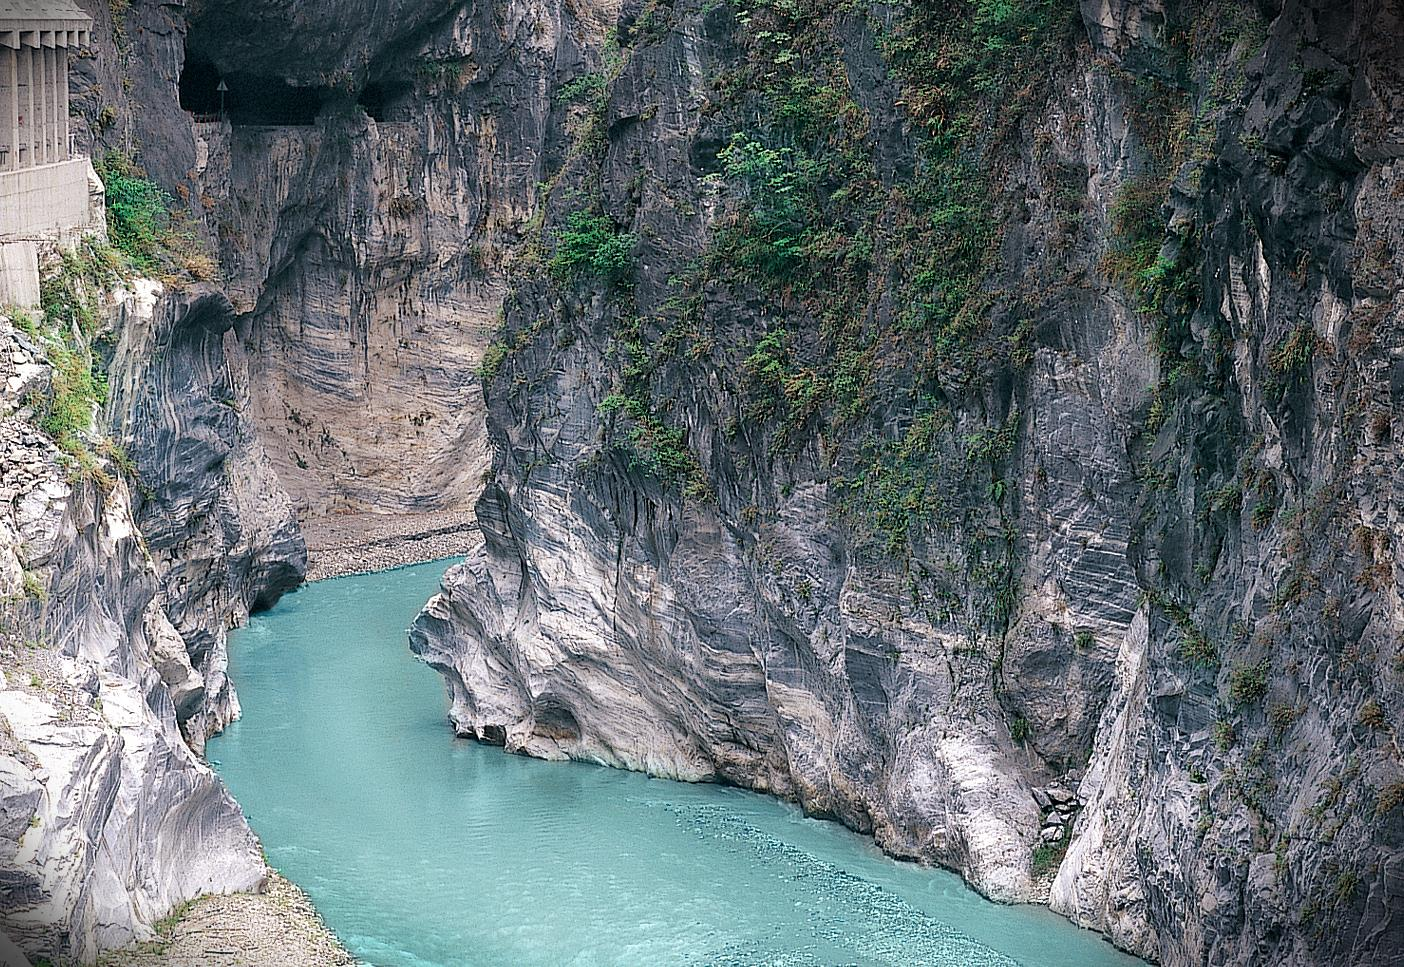 World's Top 10 must-see sights - Taroko Gorge